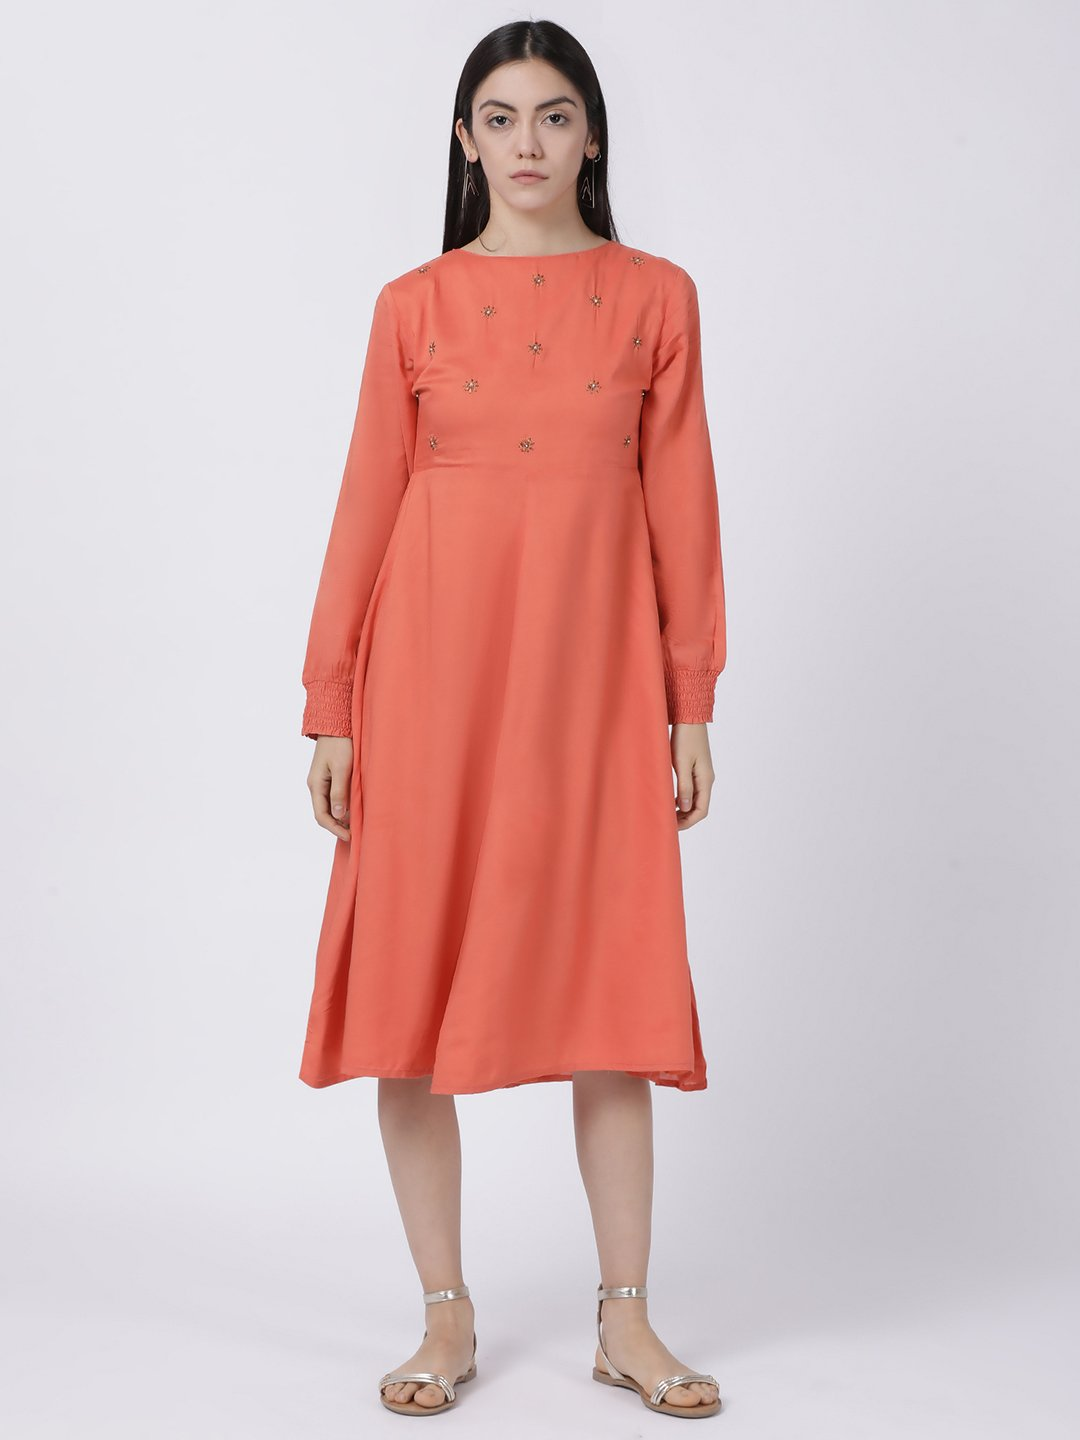 CORAL SMOCKED SLEEVE DRESS - Rossbelle